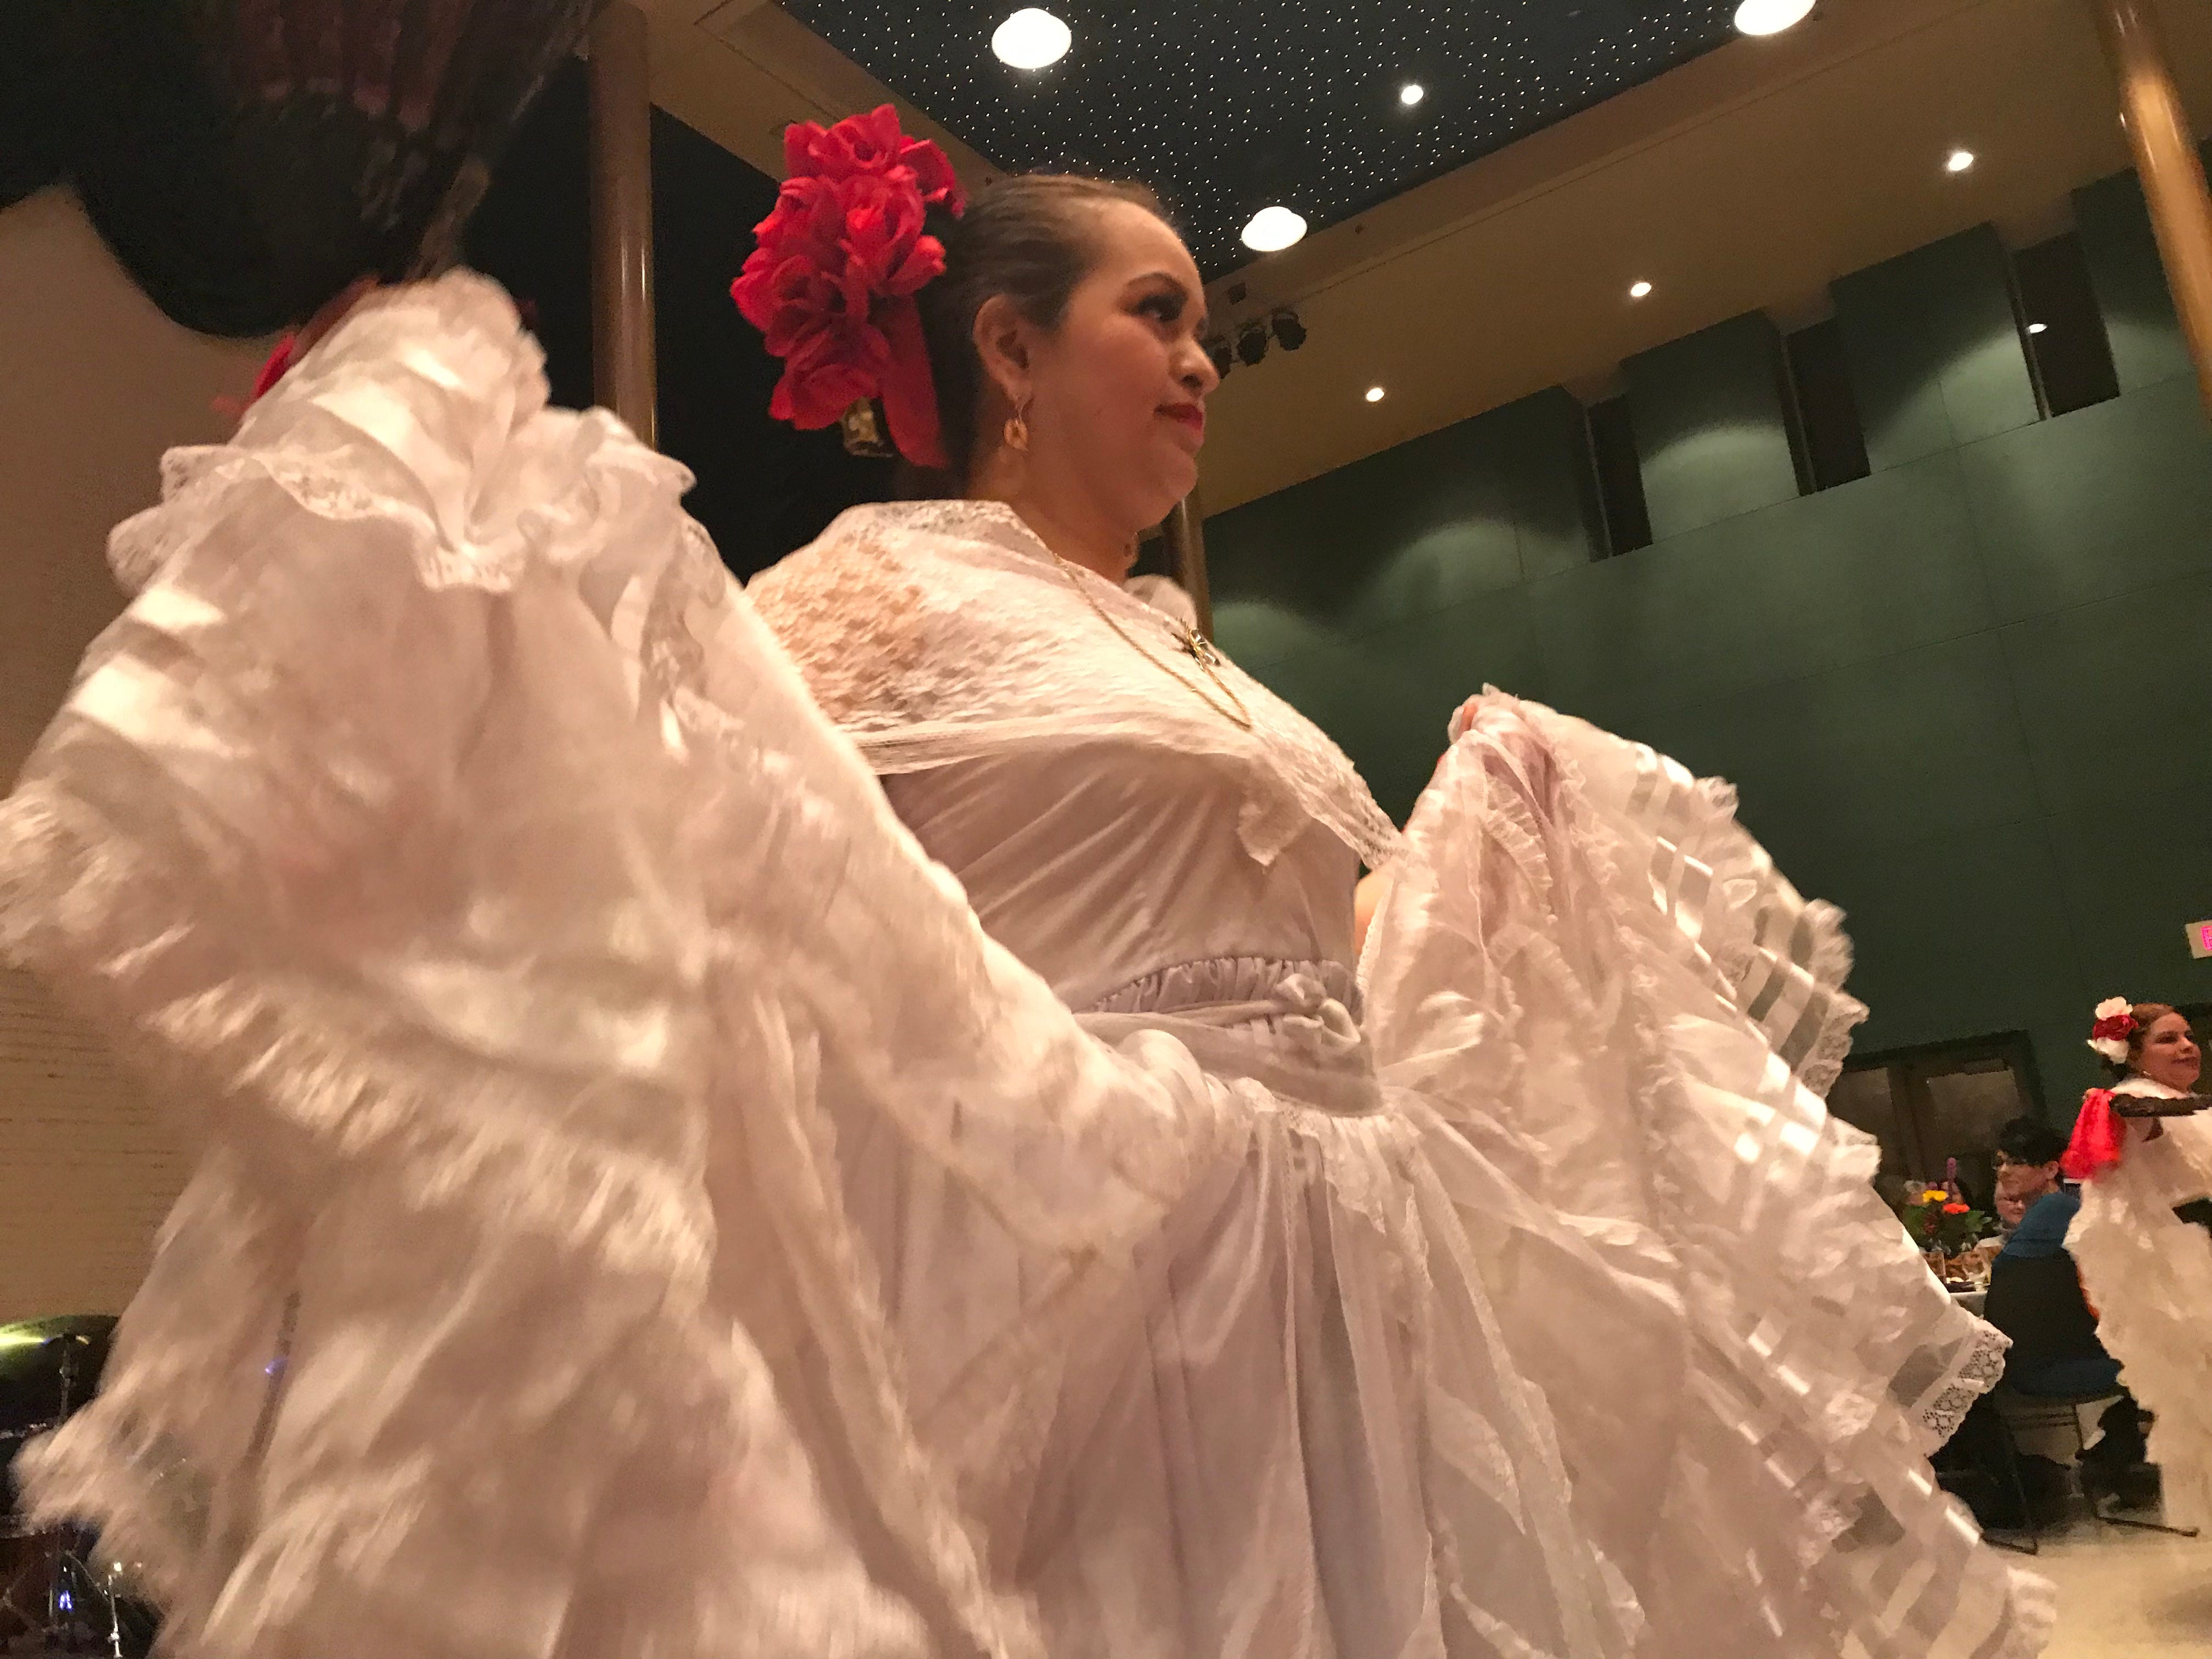 Dancers perform at the MLK Day celebration at the Grand Theater in Wausau.